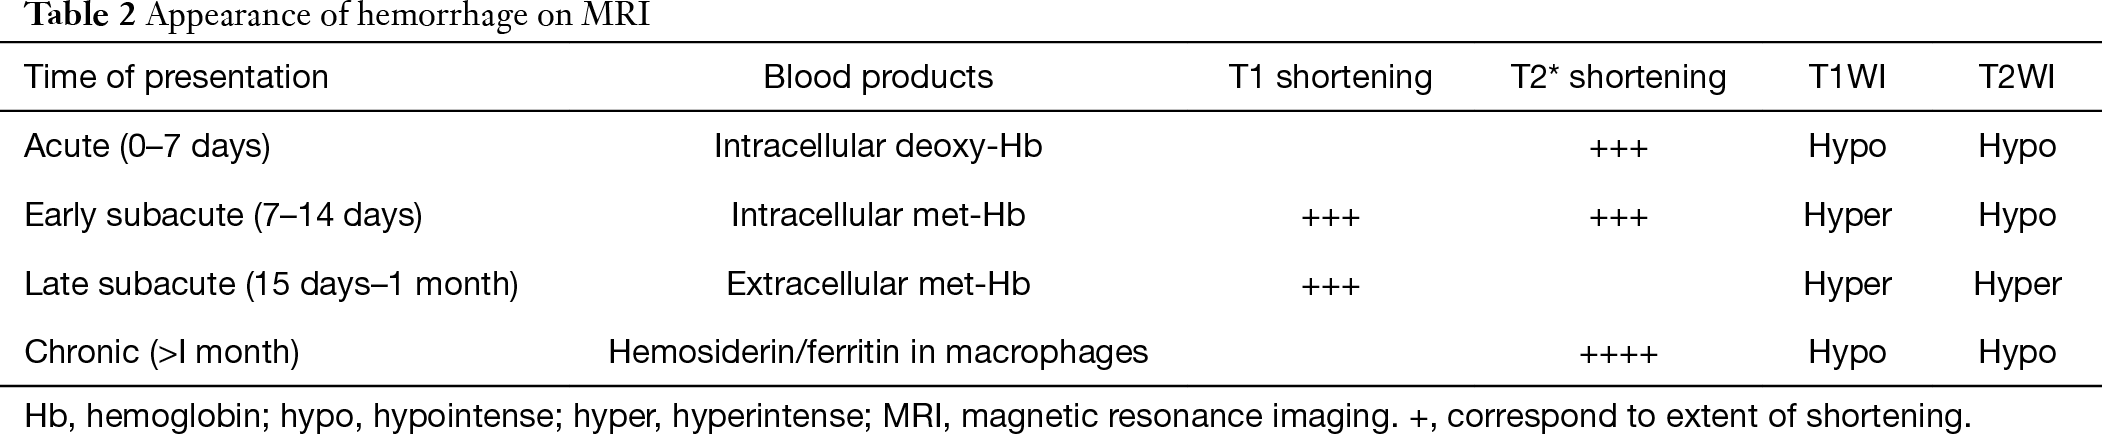 blood products mri